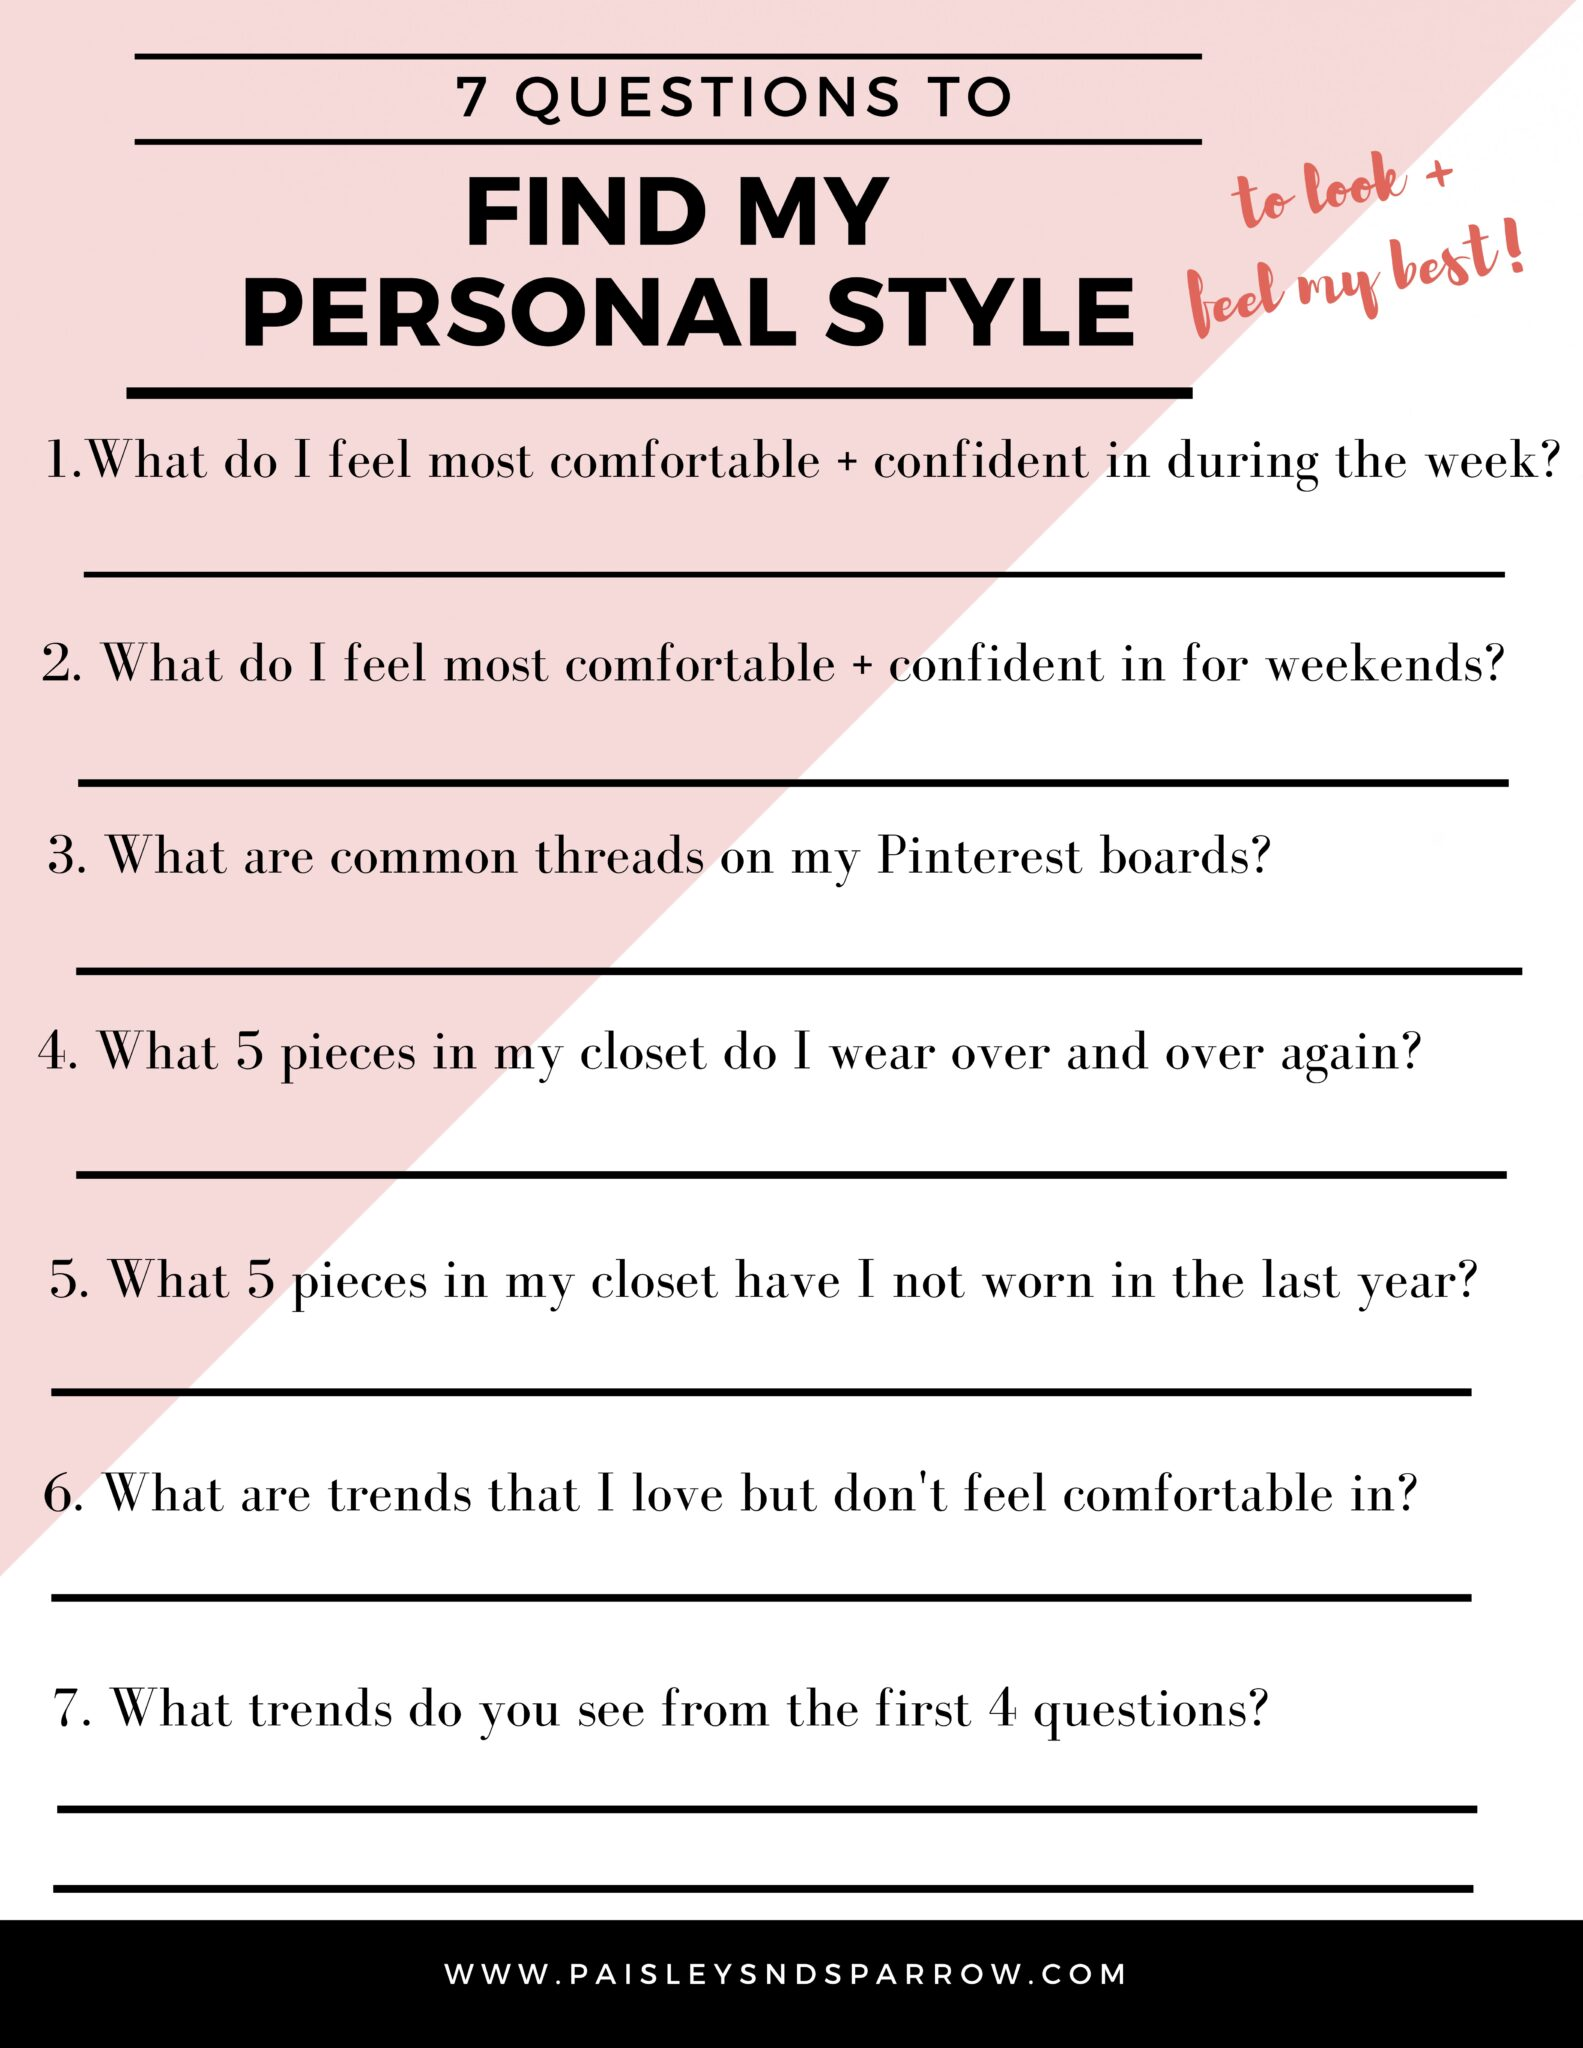 How to Find Your Personal Style - 7 Questions to ask yourself